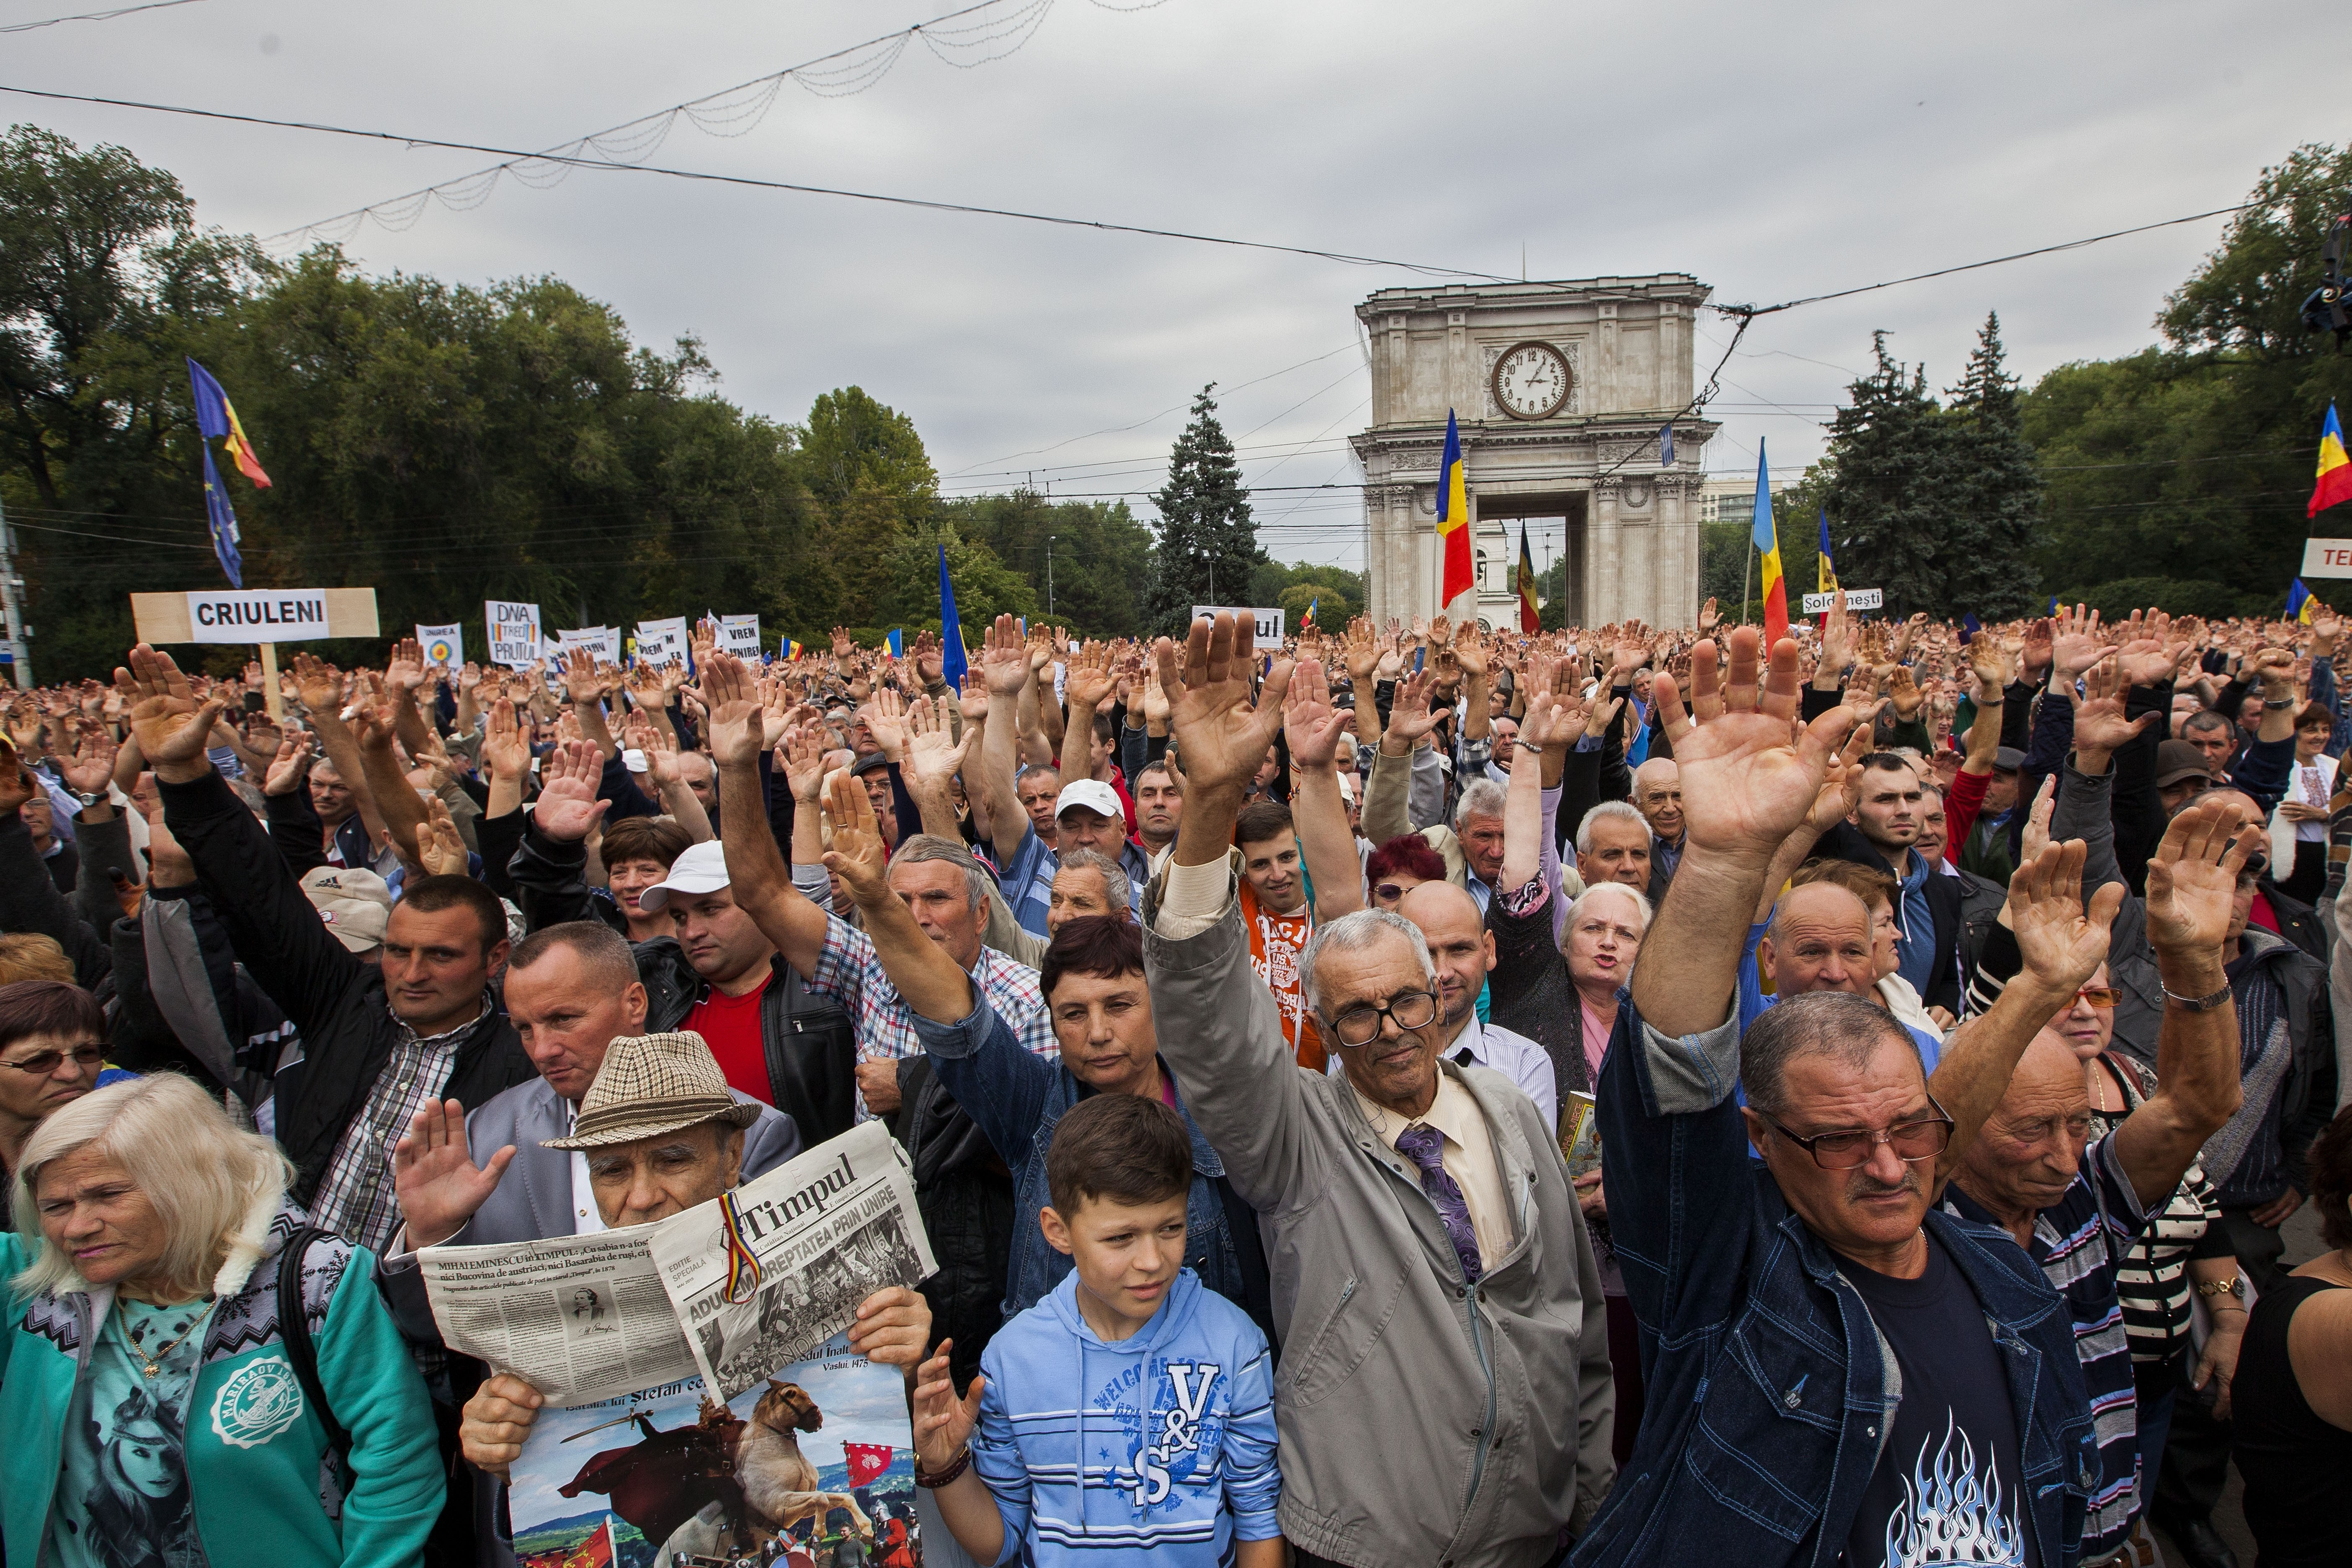 Protesters take part in a rally demanding the resignation of President Nicolae Timofti in Chisinau, Moldova, on Sept. 13, 2015